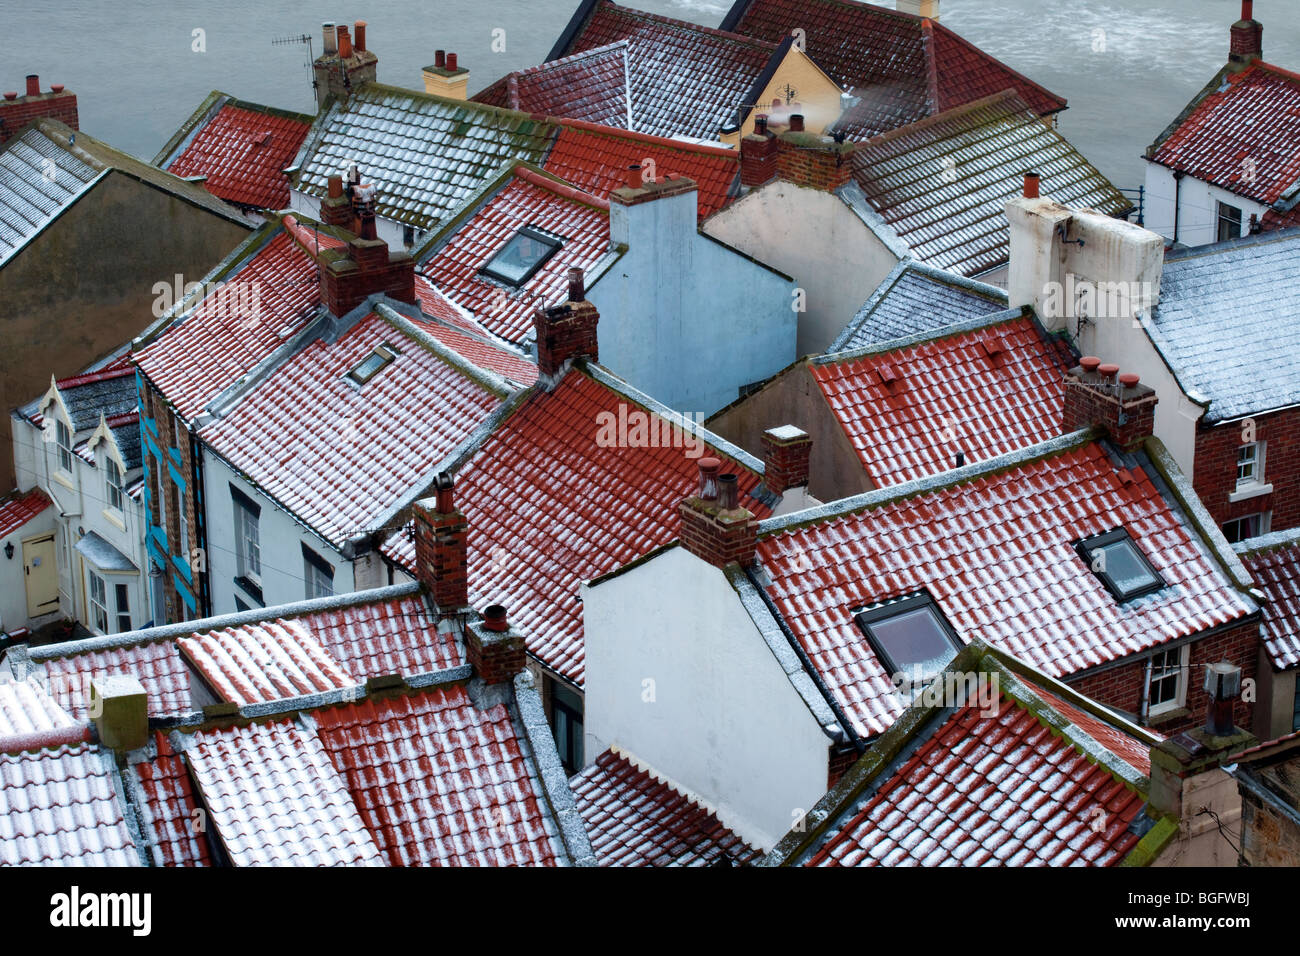 Winter weather & snow covered roofs. The snow covered tiled red rooftops of fishermen's houses in Staithes, - Stock Image